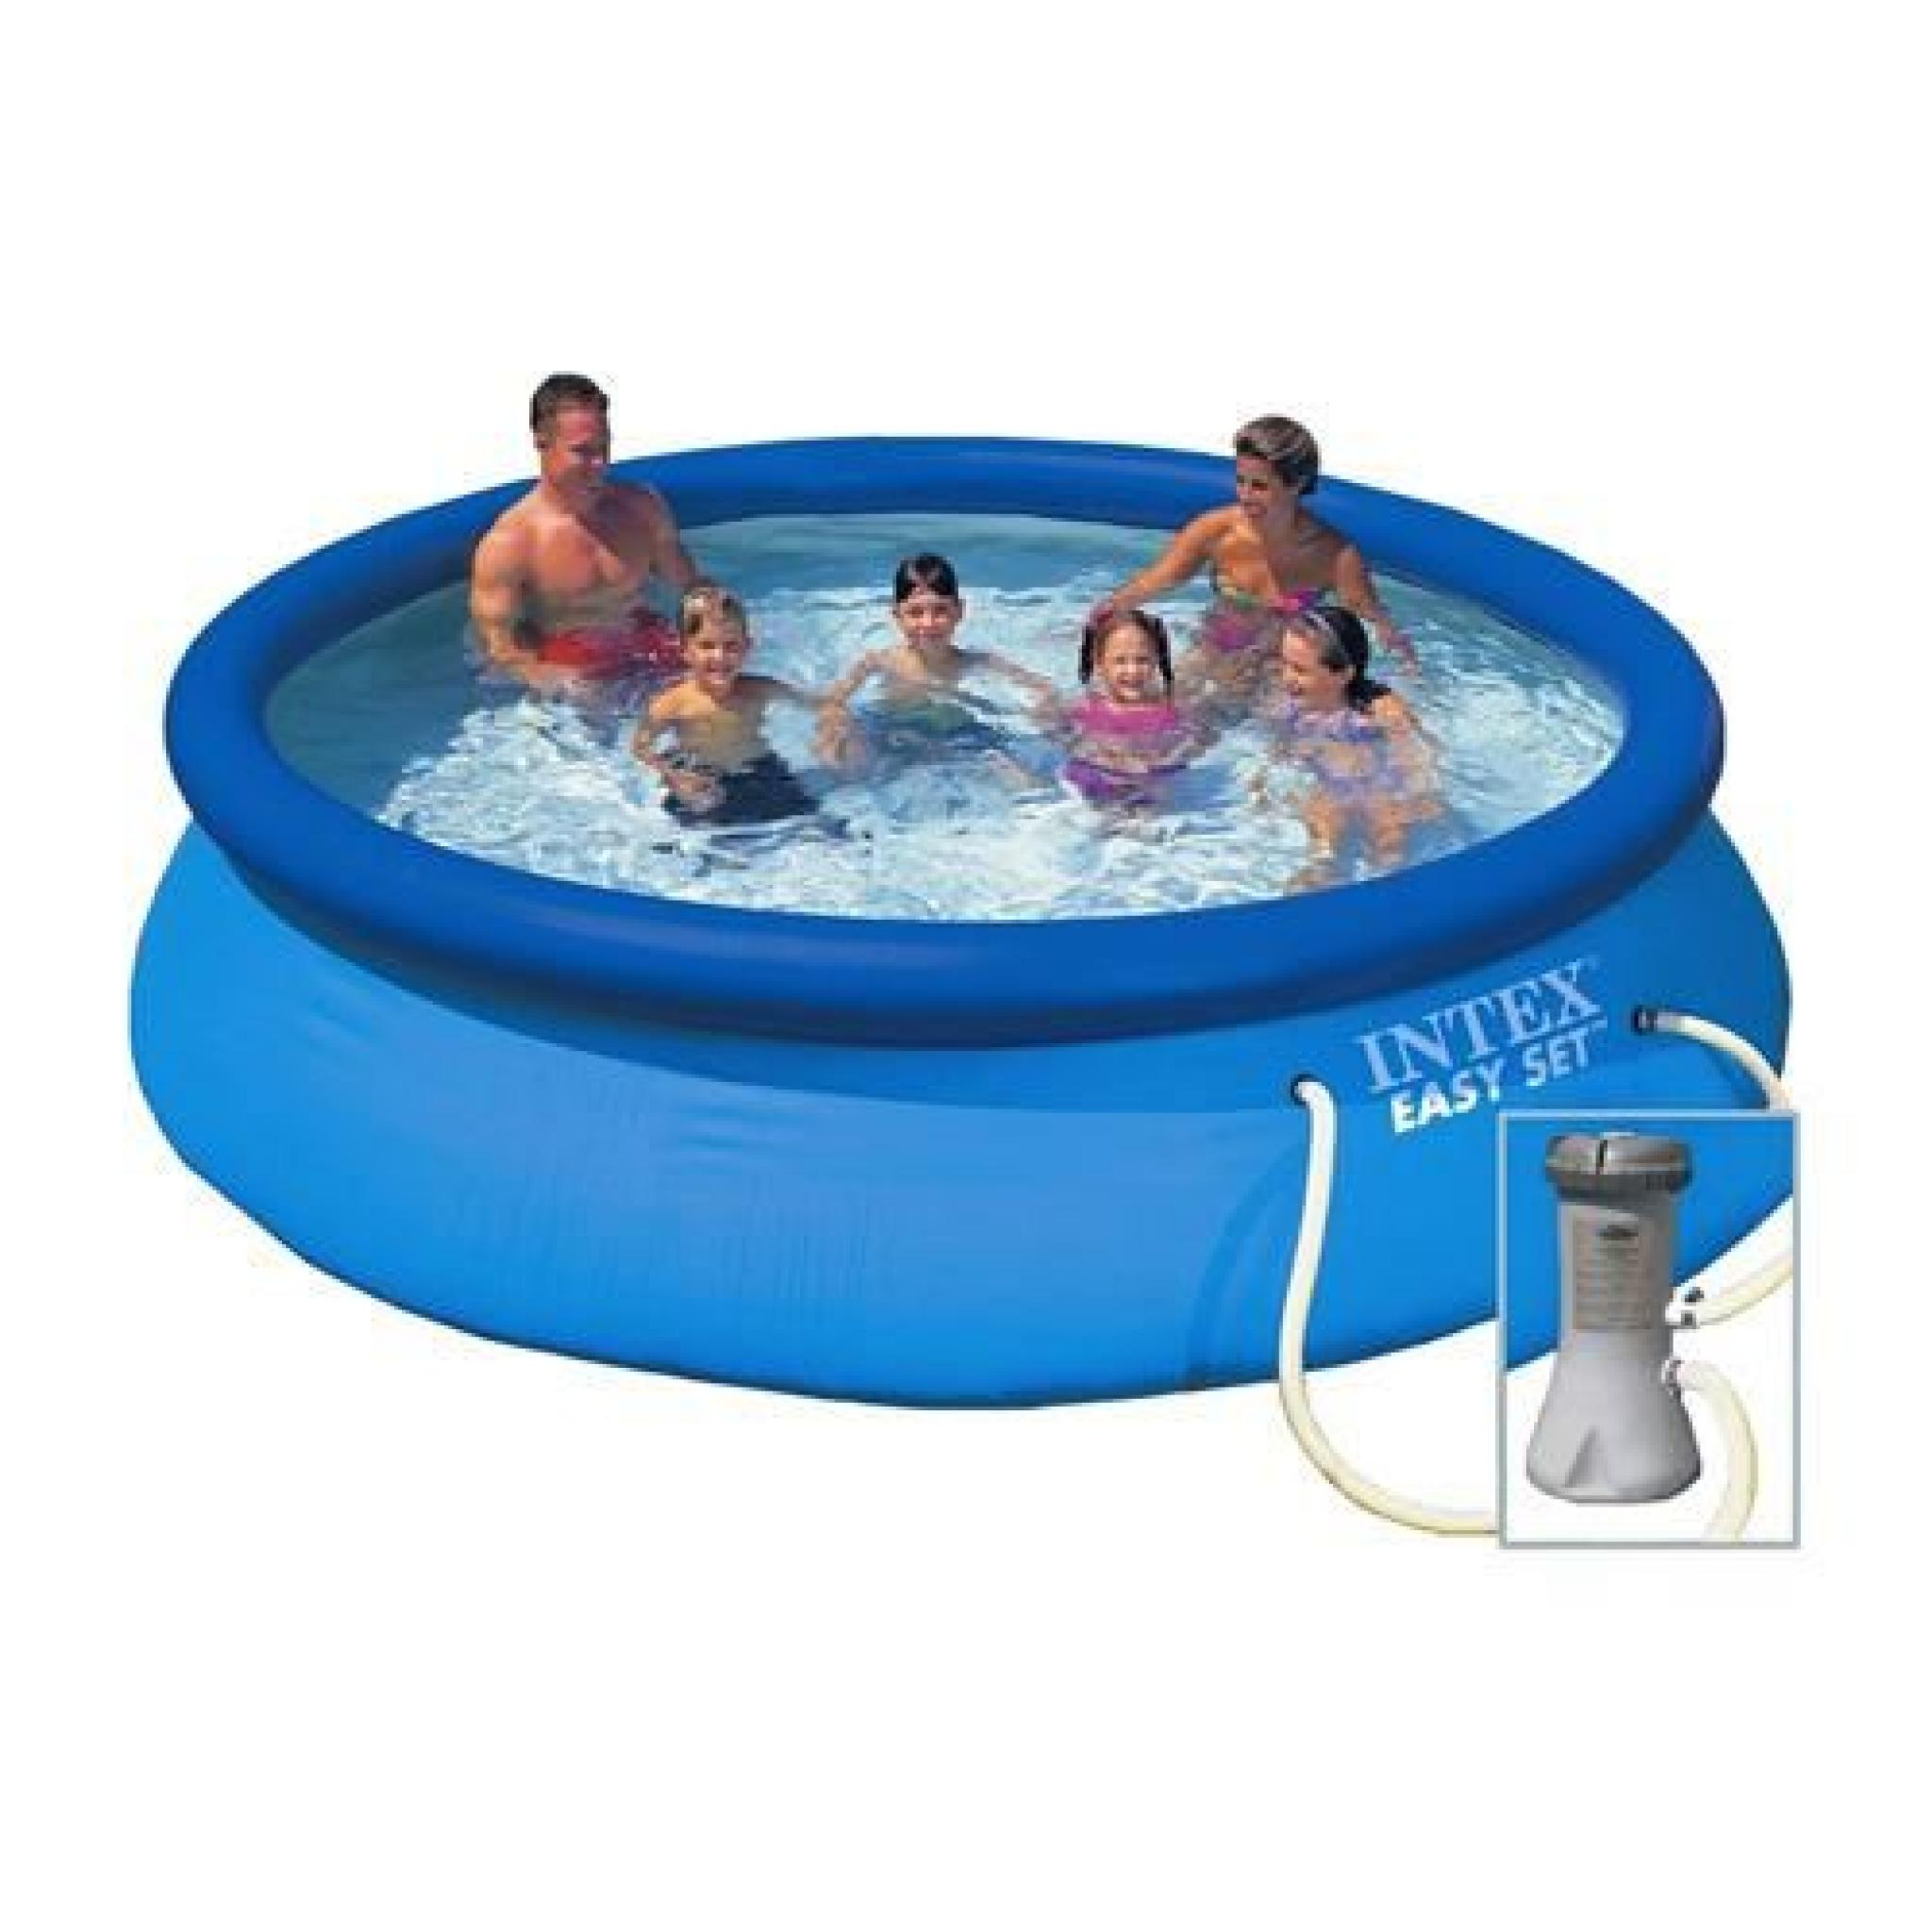 Piscine easy set et purateur diam 3 66 x 0 76 m for Piscine autoportante pas cher